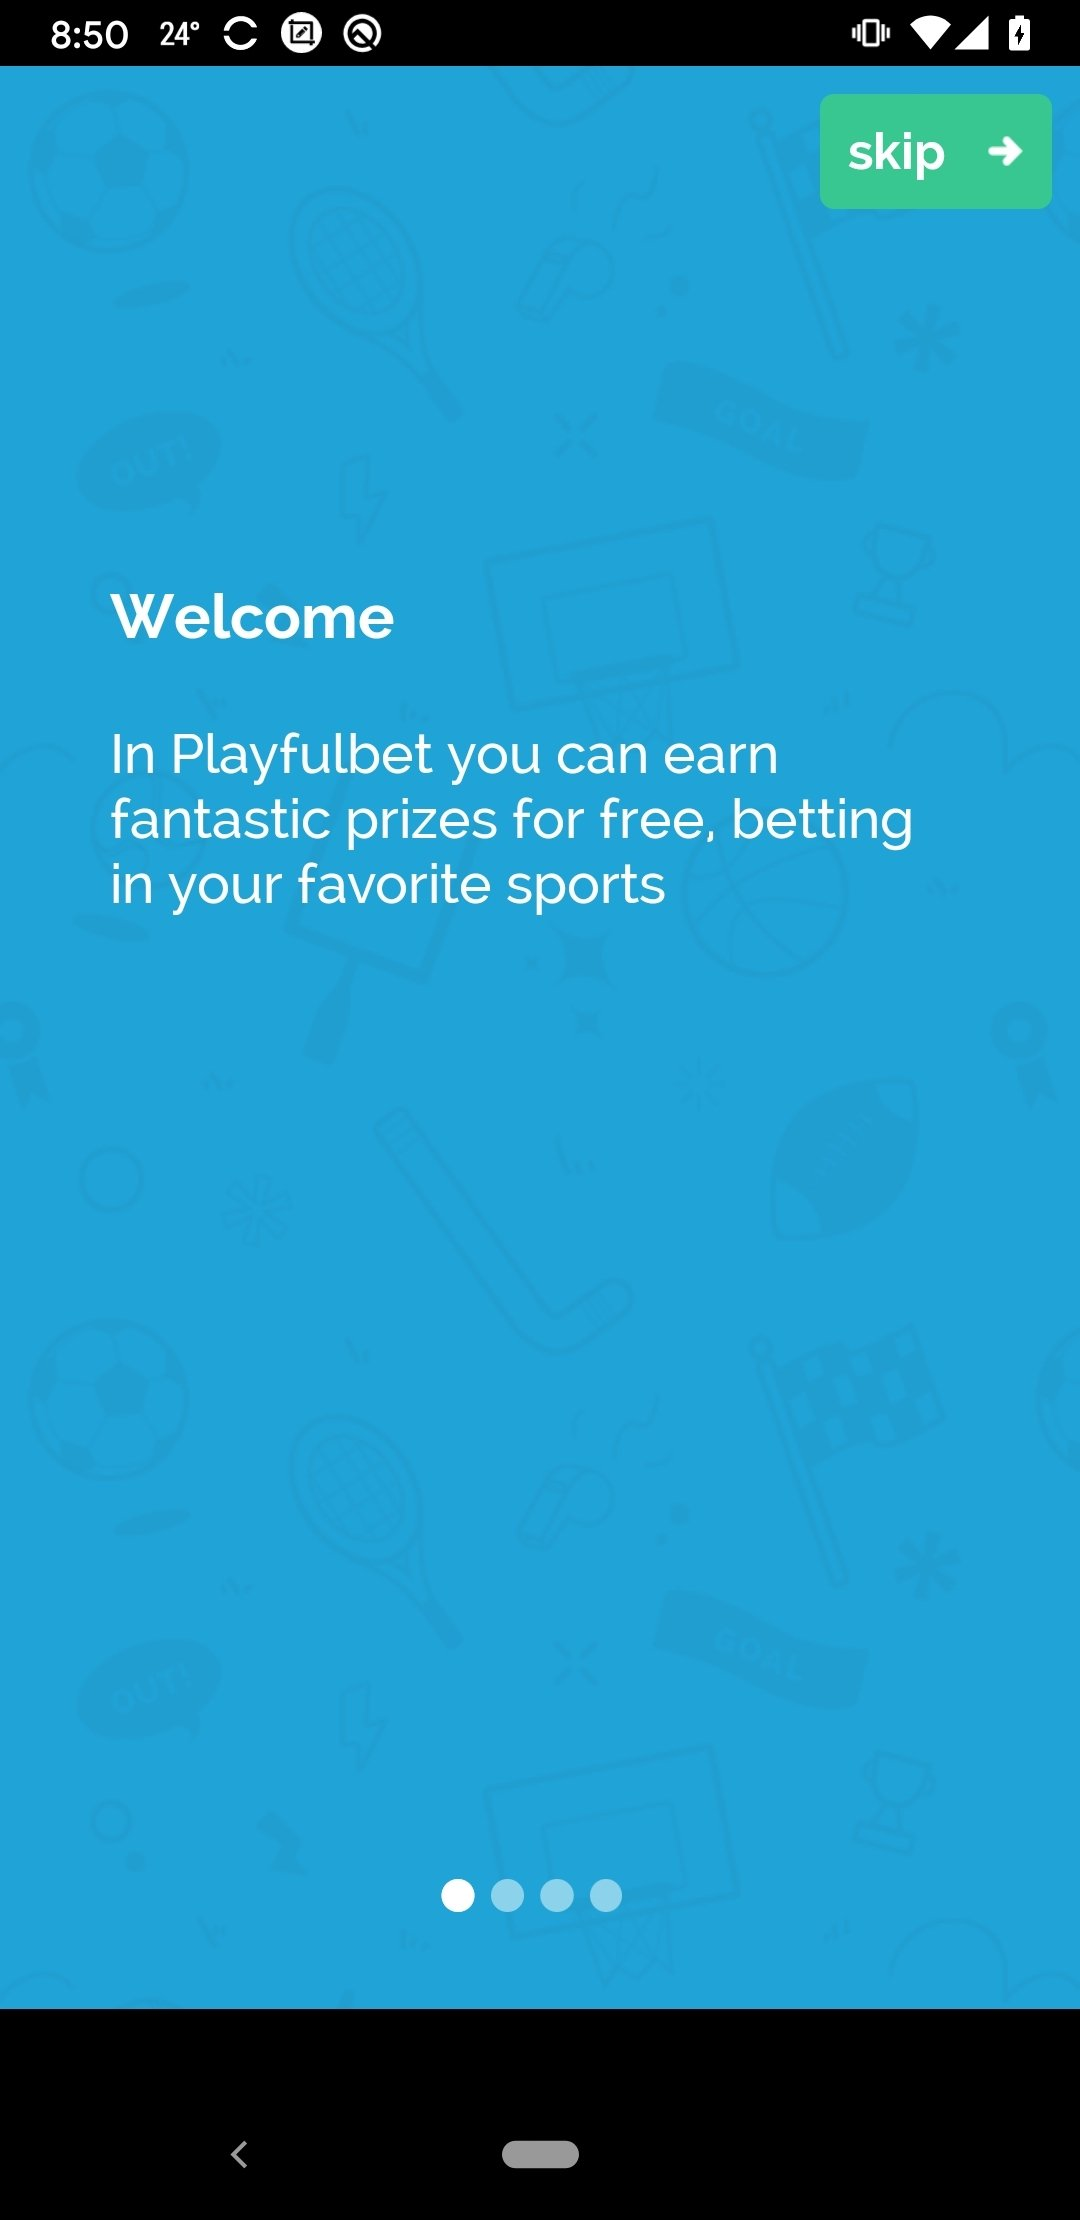 Playfulbet Android image 6